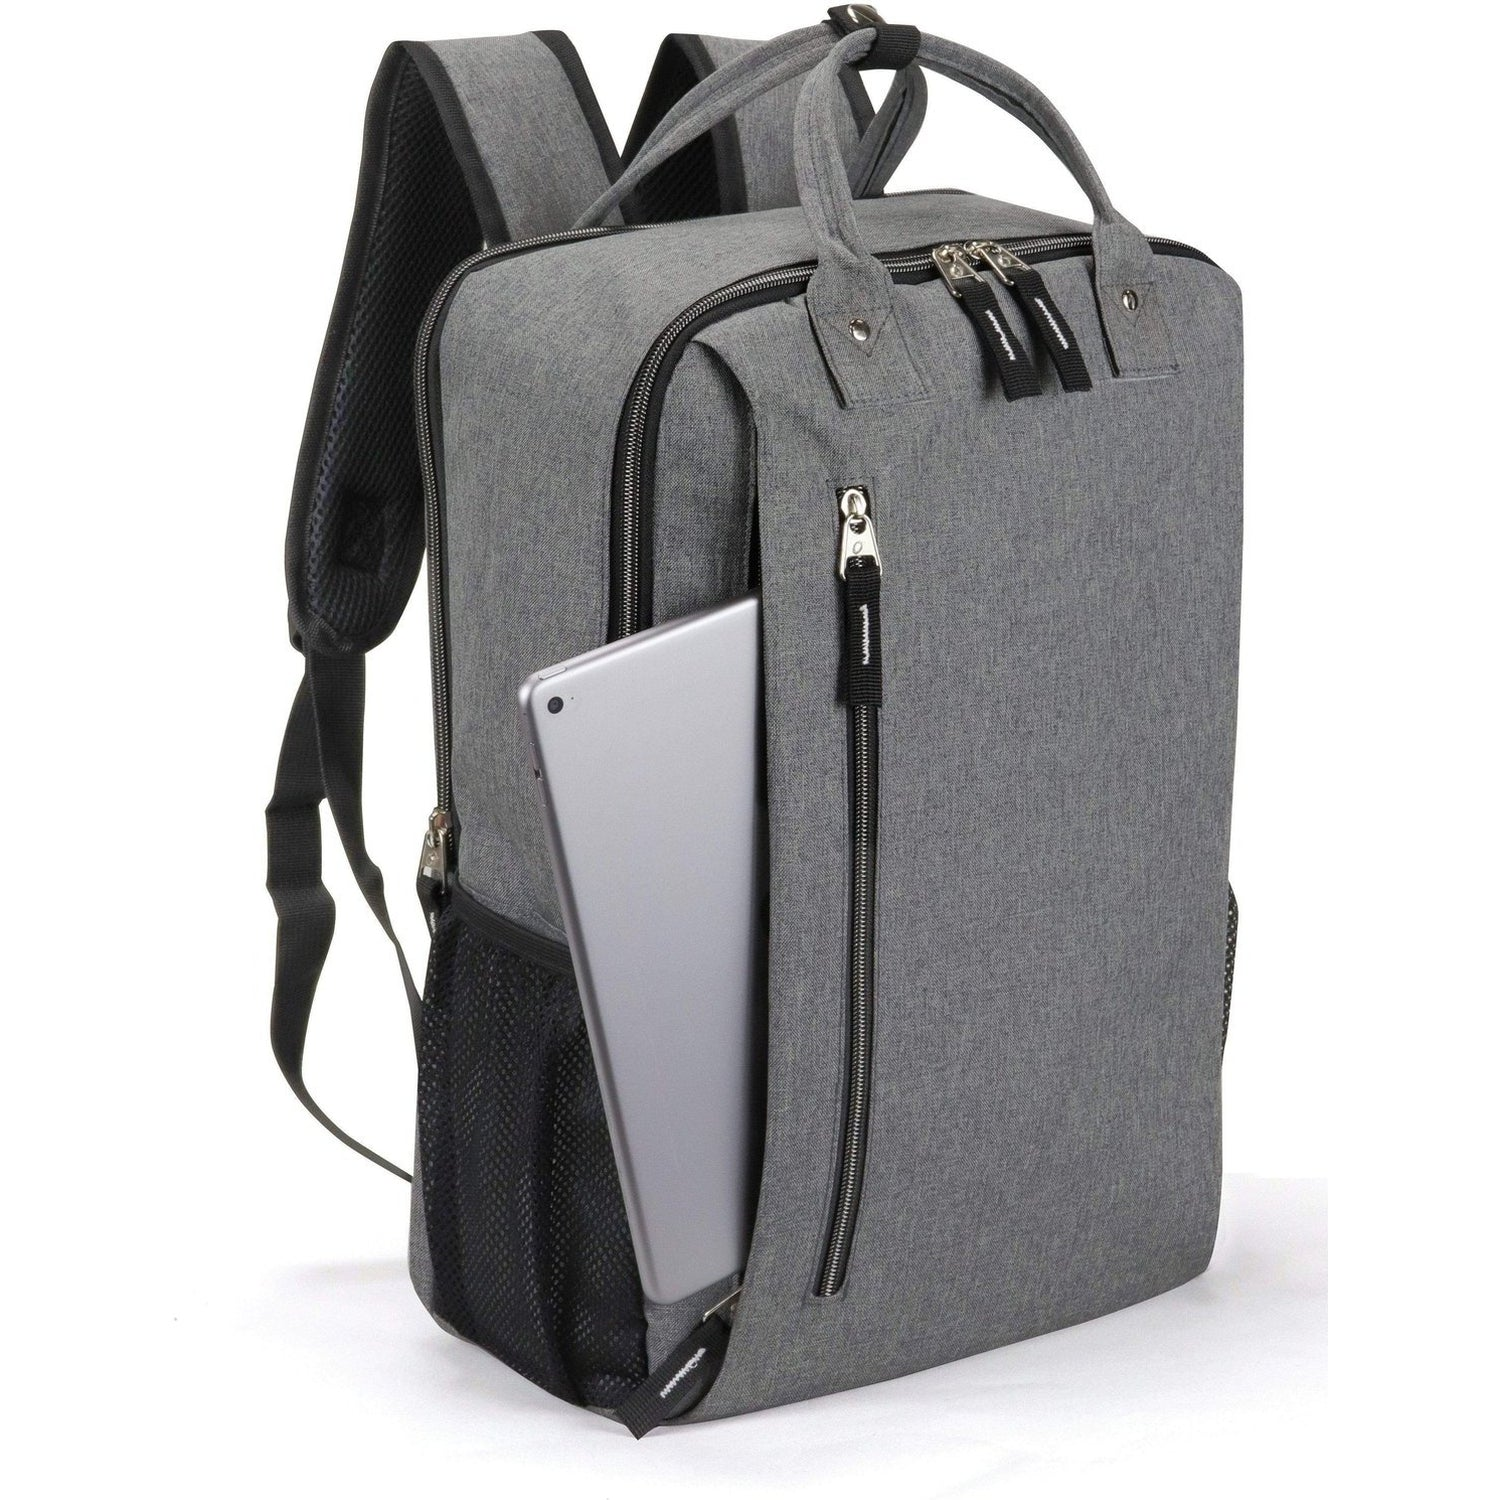 ''Deluxe COMPUTER Backpack - Premium Backpacks for Work, School - HP2214''